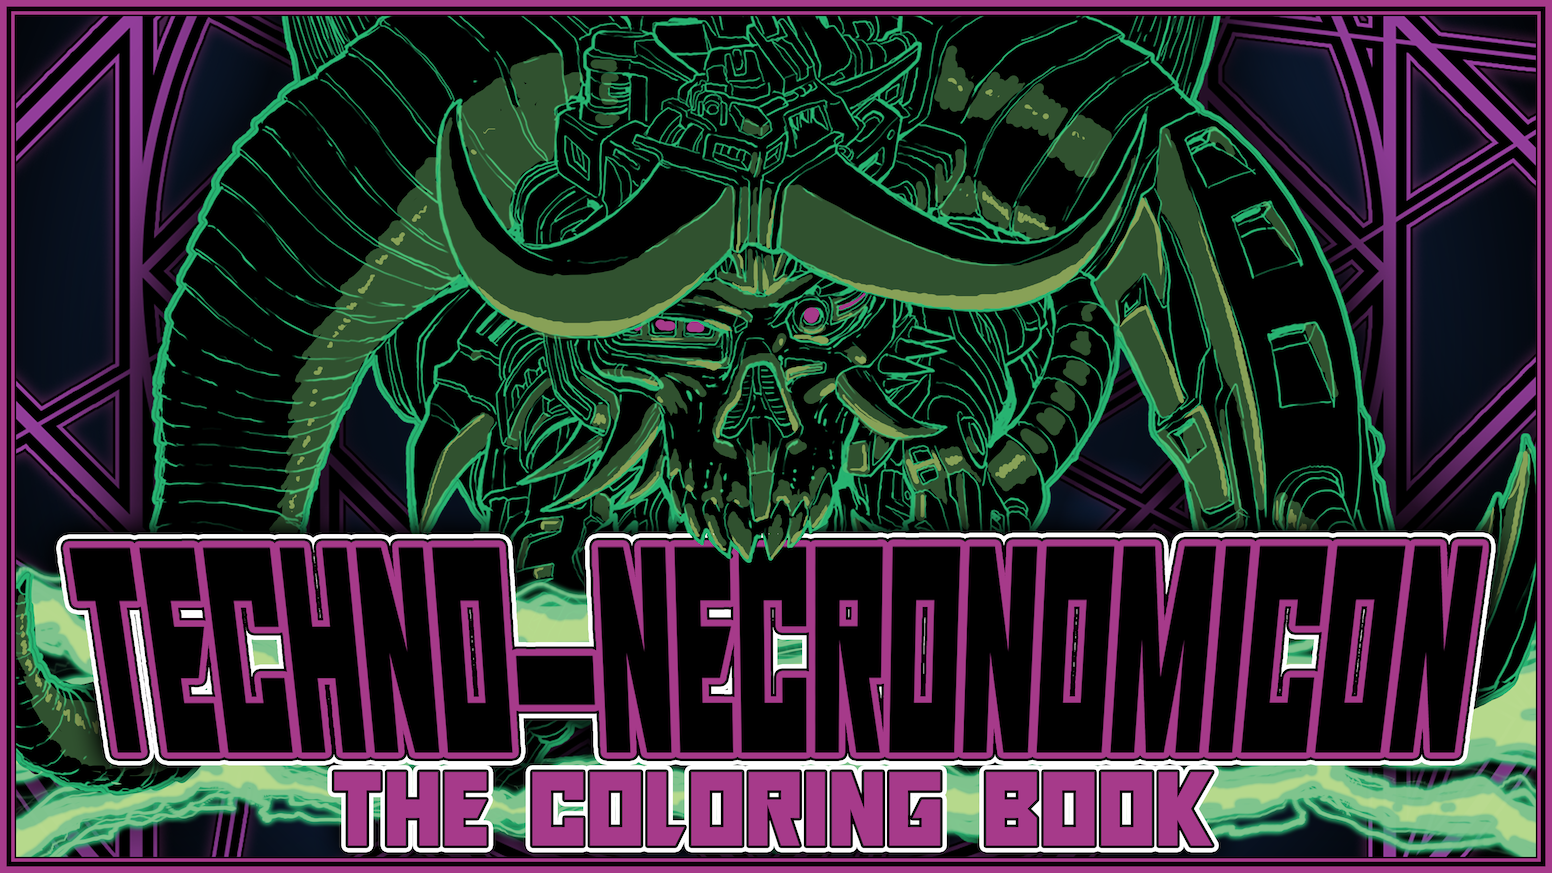 Techno-Necronomicon the Coloring Book by Ethan Brewerton